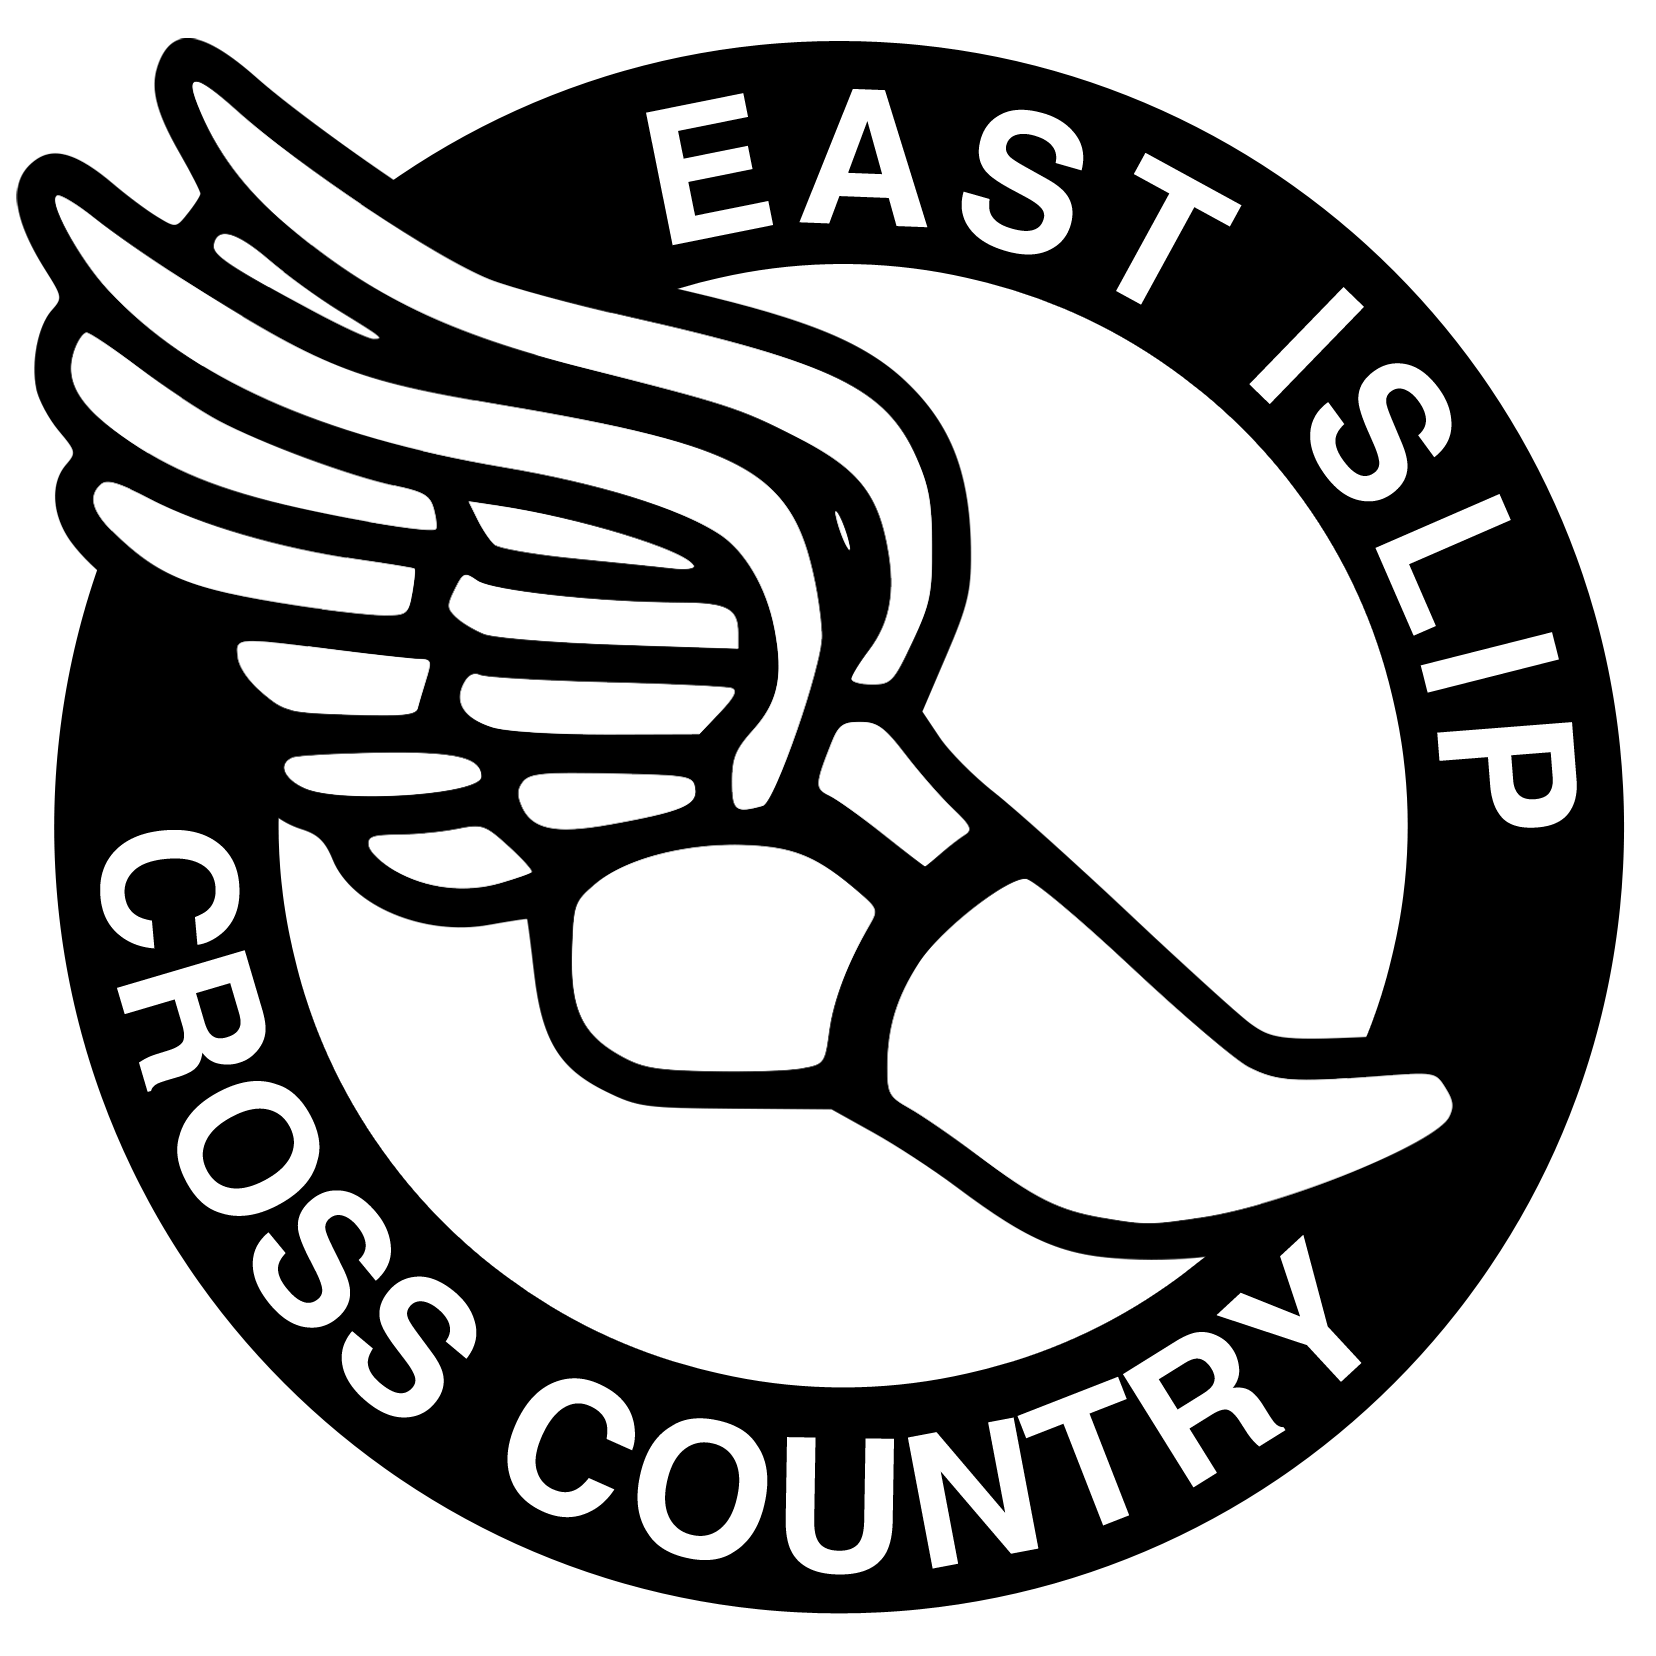 cross country running logo clipart panda free clipart